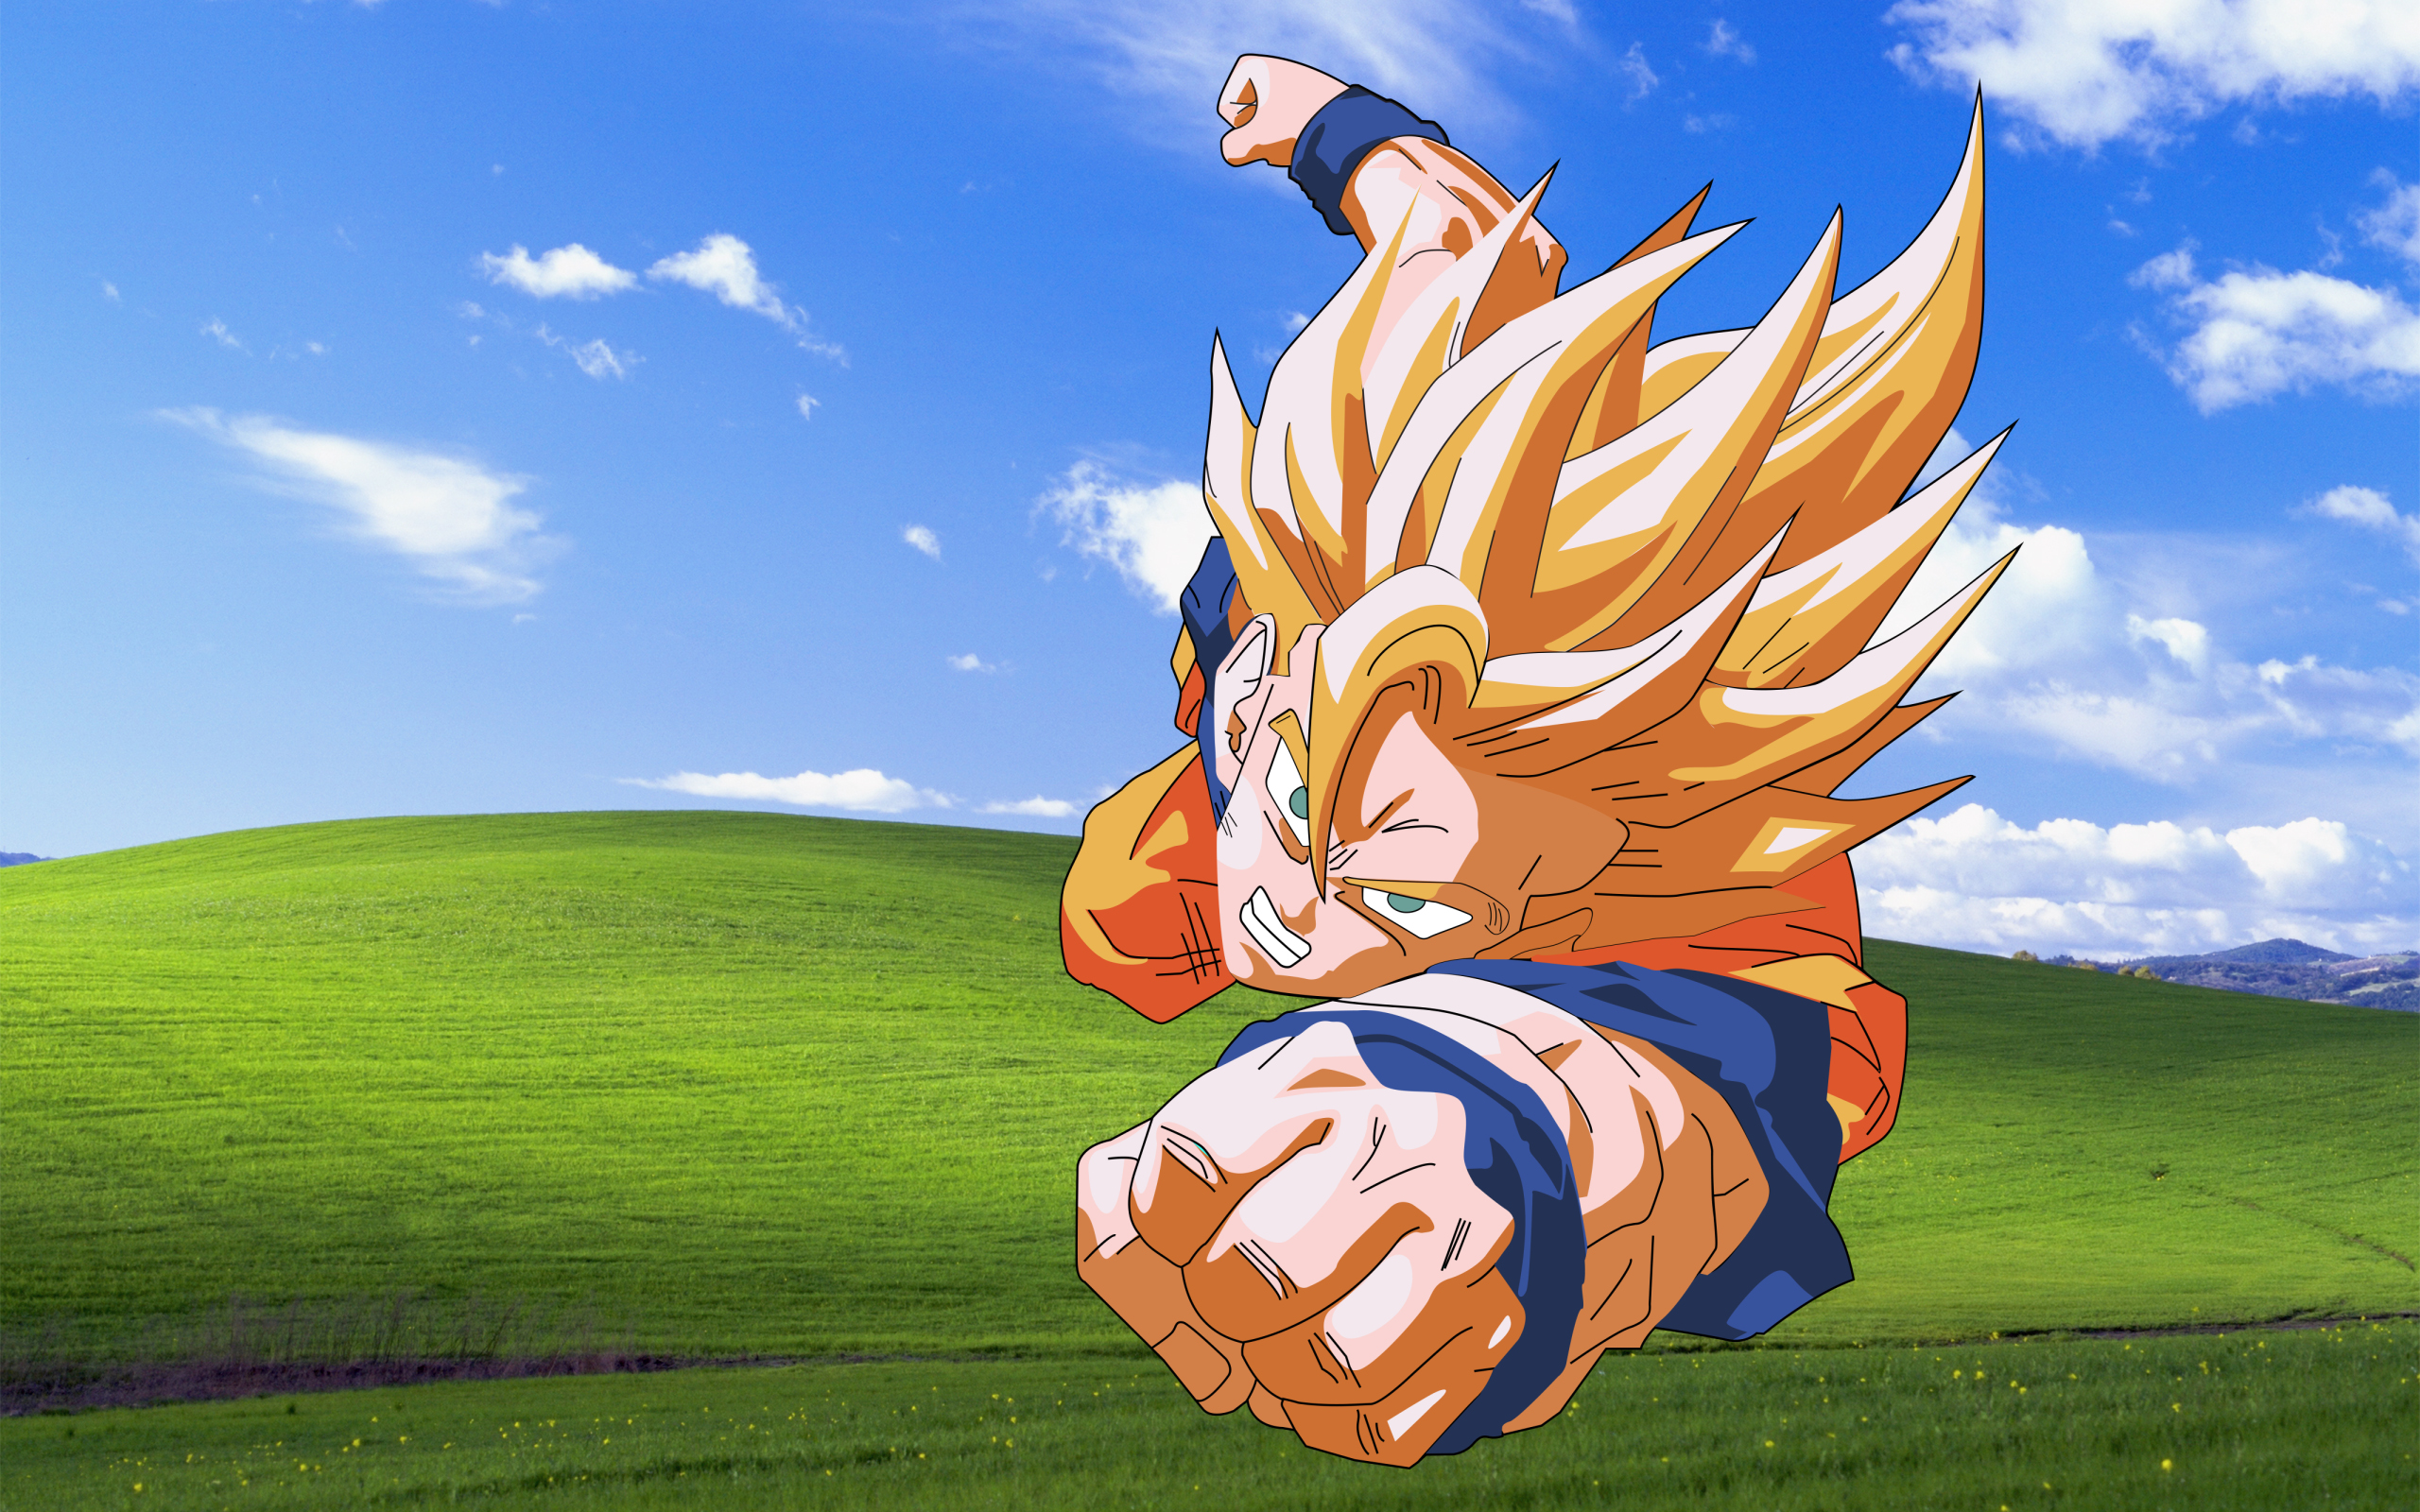 Dragon Ball Z Goku Windows 7 Wallpaper Id 5104 Frenziacom 2560x1600